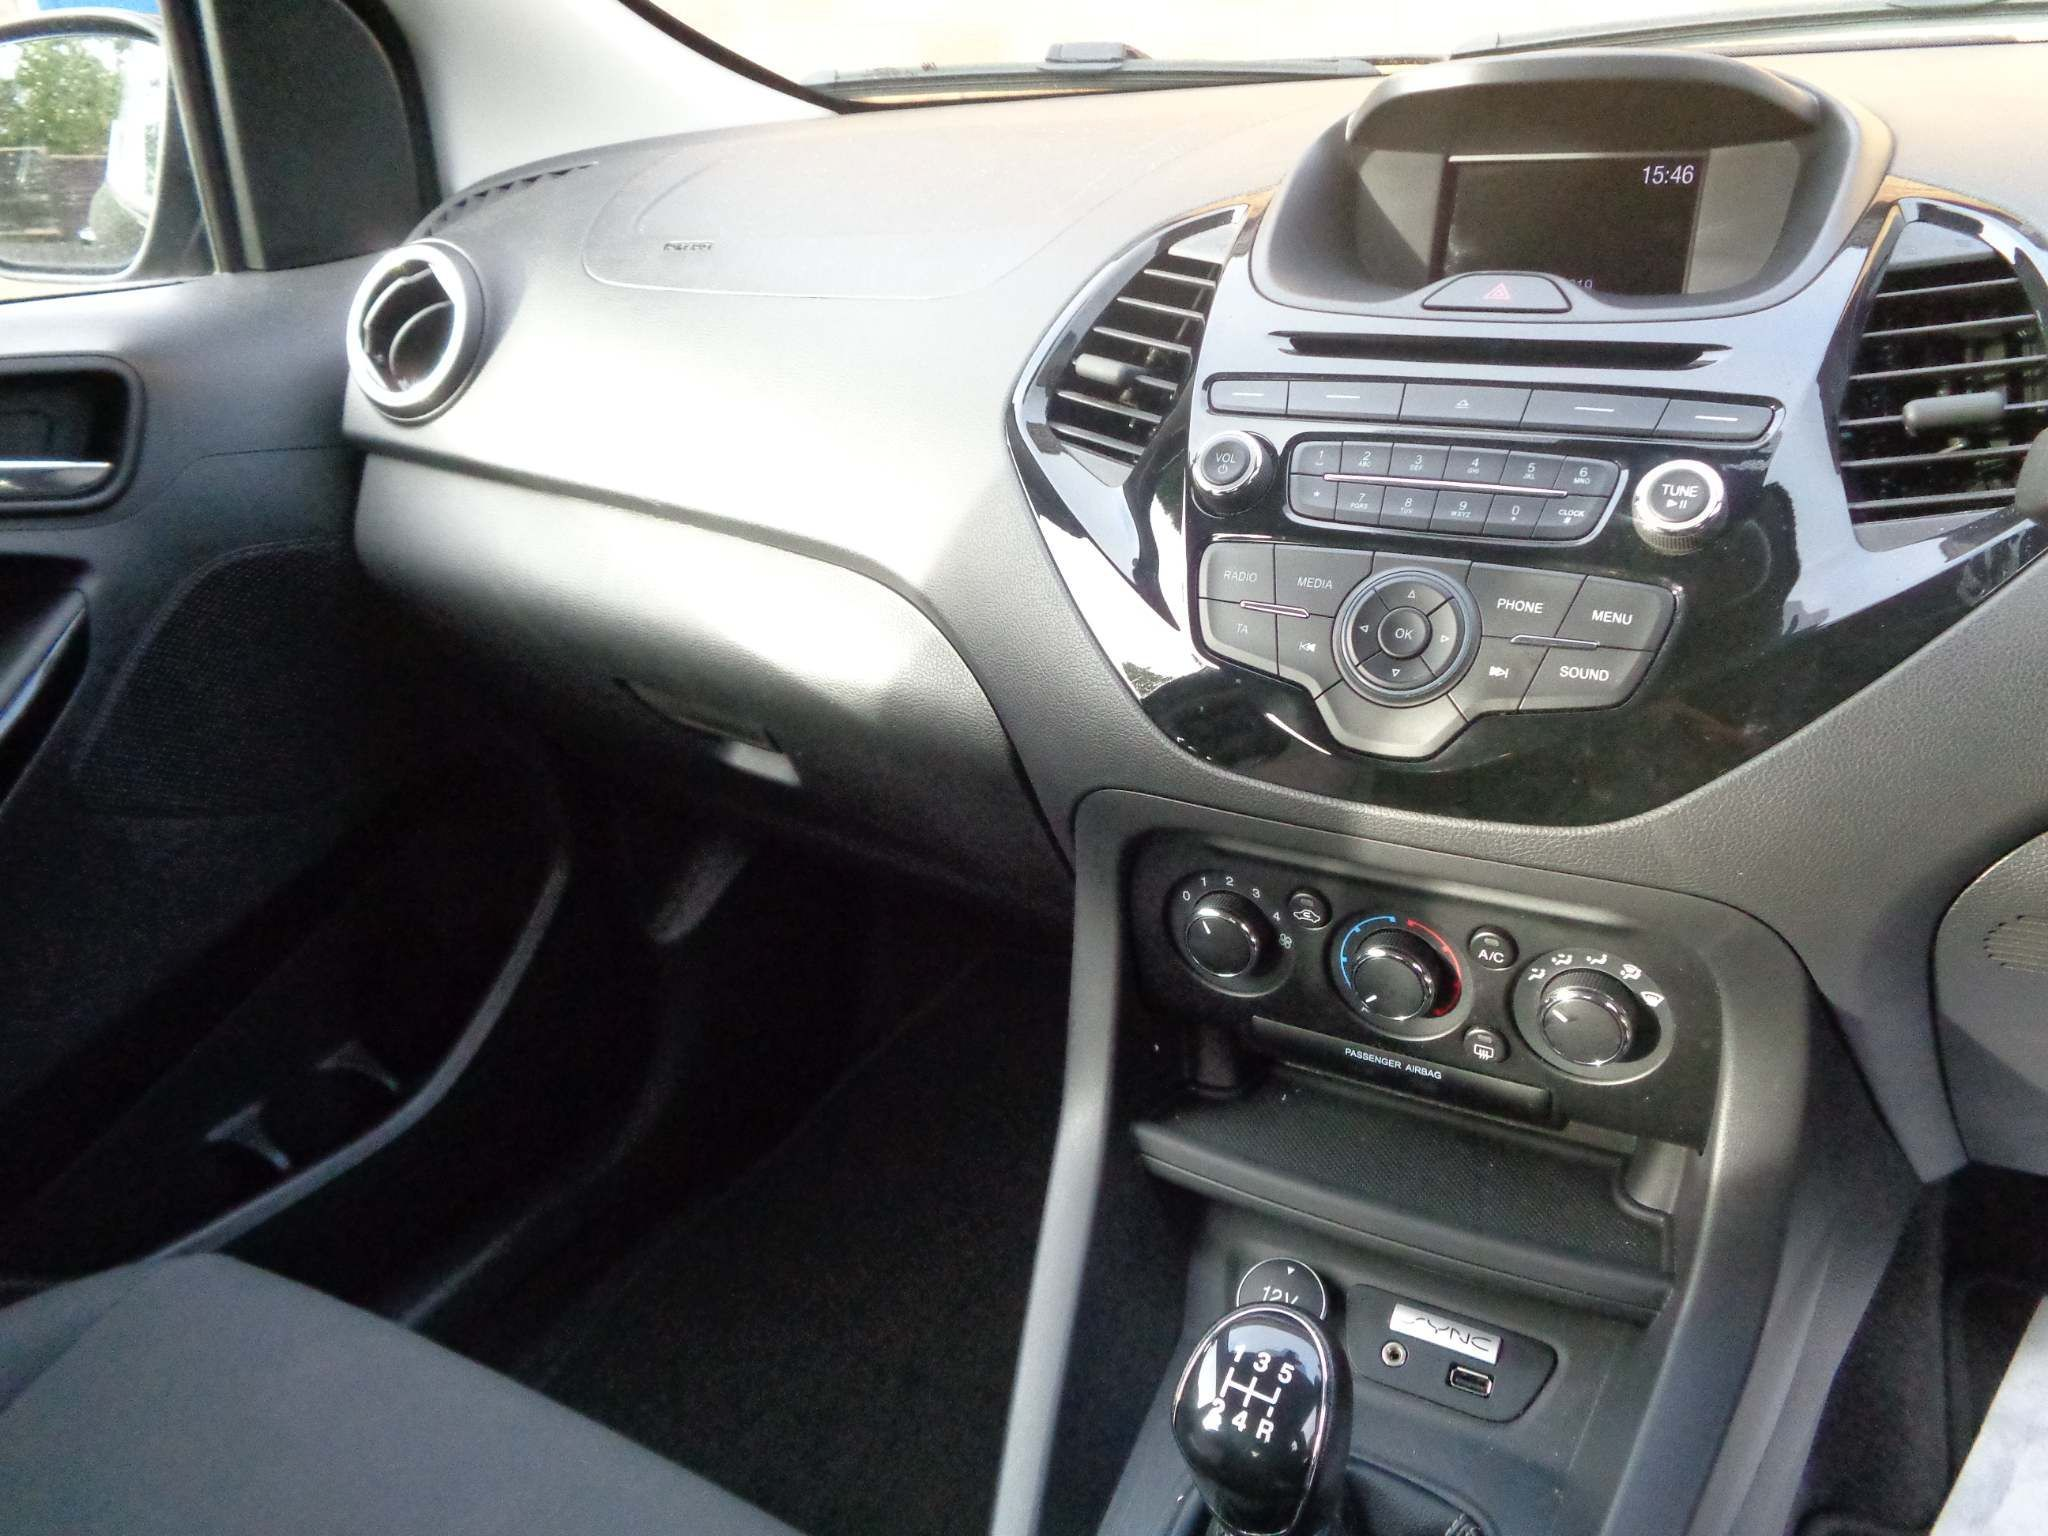 http://pictures2.autotrader.co.uk/imgser-uk/servlet/media?id=e8ae5f592c214df79b5bc26b2283a6d1